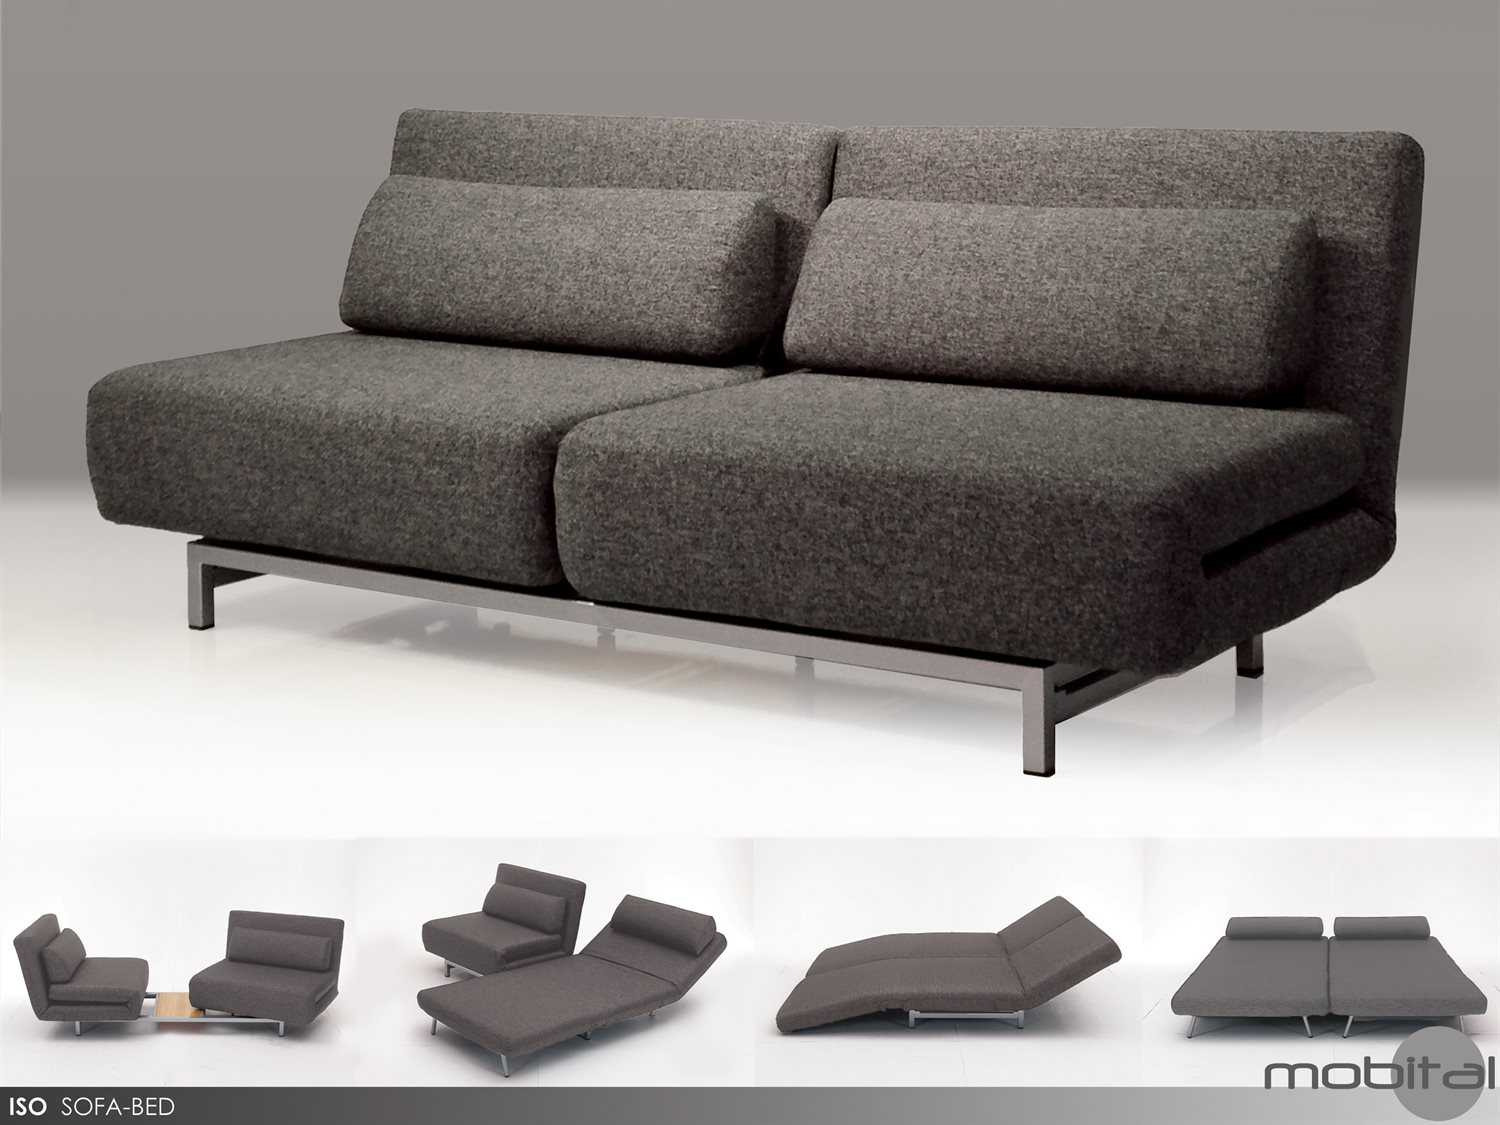 mobital iso charcoal tweed double sofa bed with 2 single swivel chairs HOJASRX